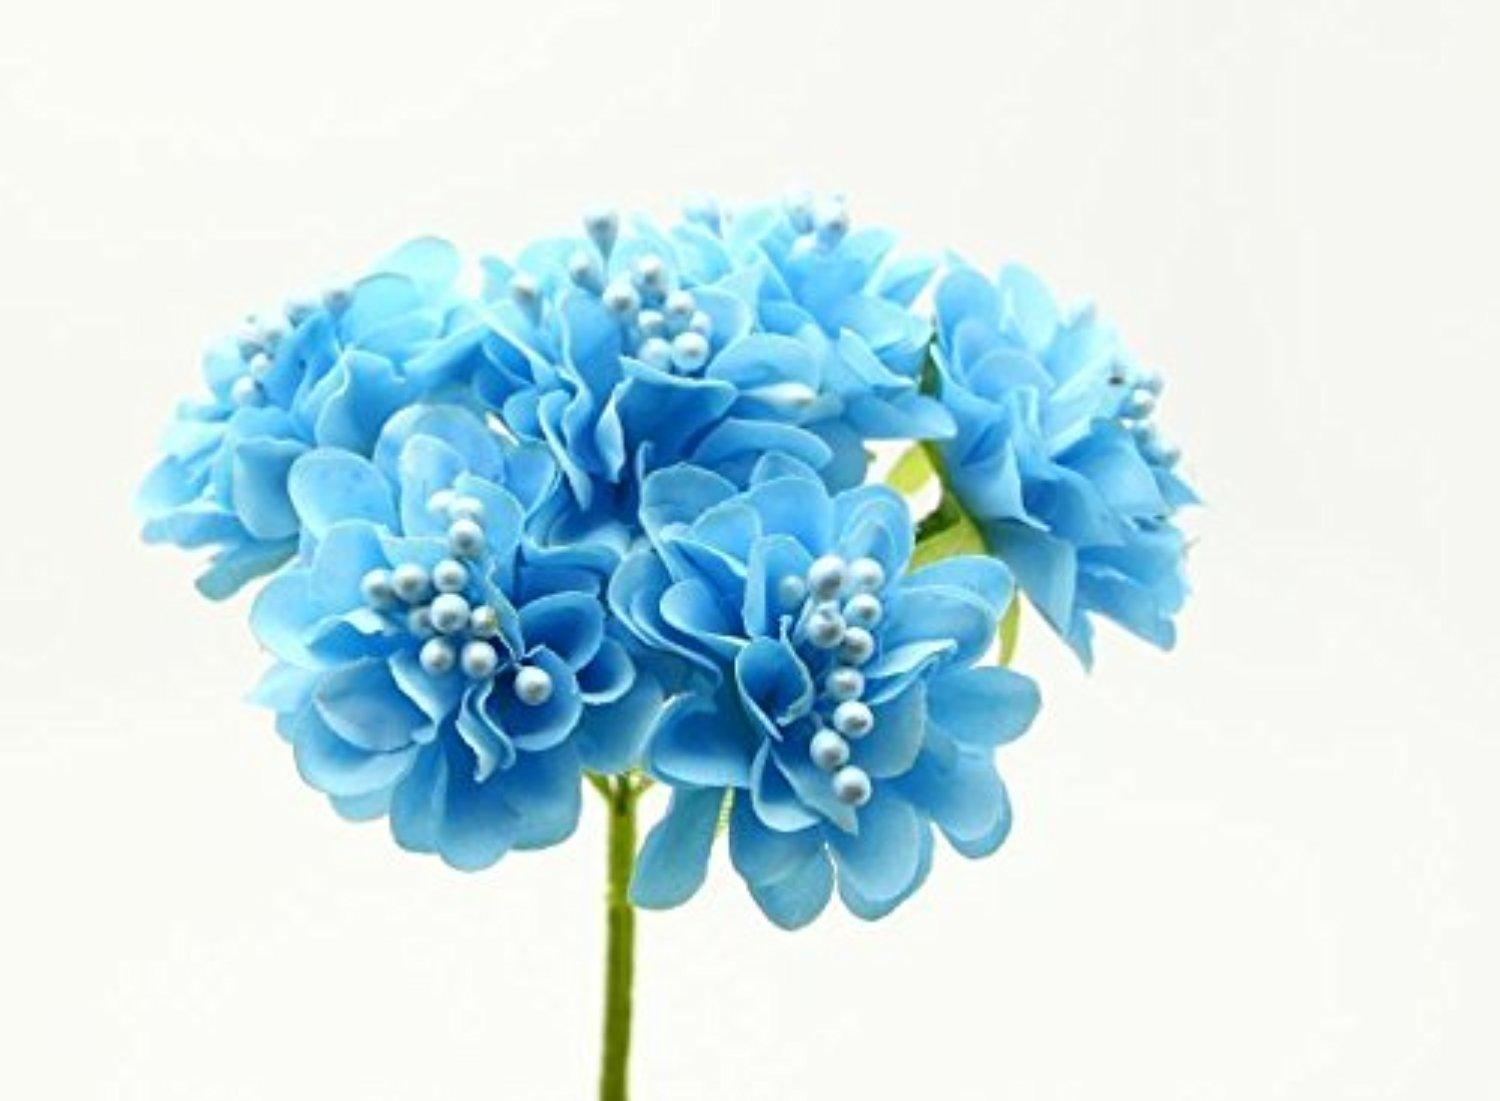 Online store lariy flower bouquet carnations silk artificial lariy flower bouquet carnations silk artificial flowers for decor diy blue lake new izmirmasajfo